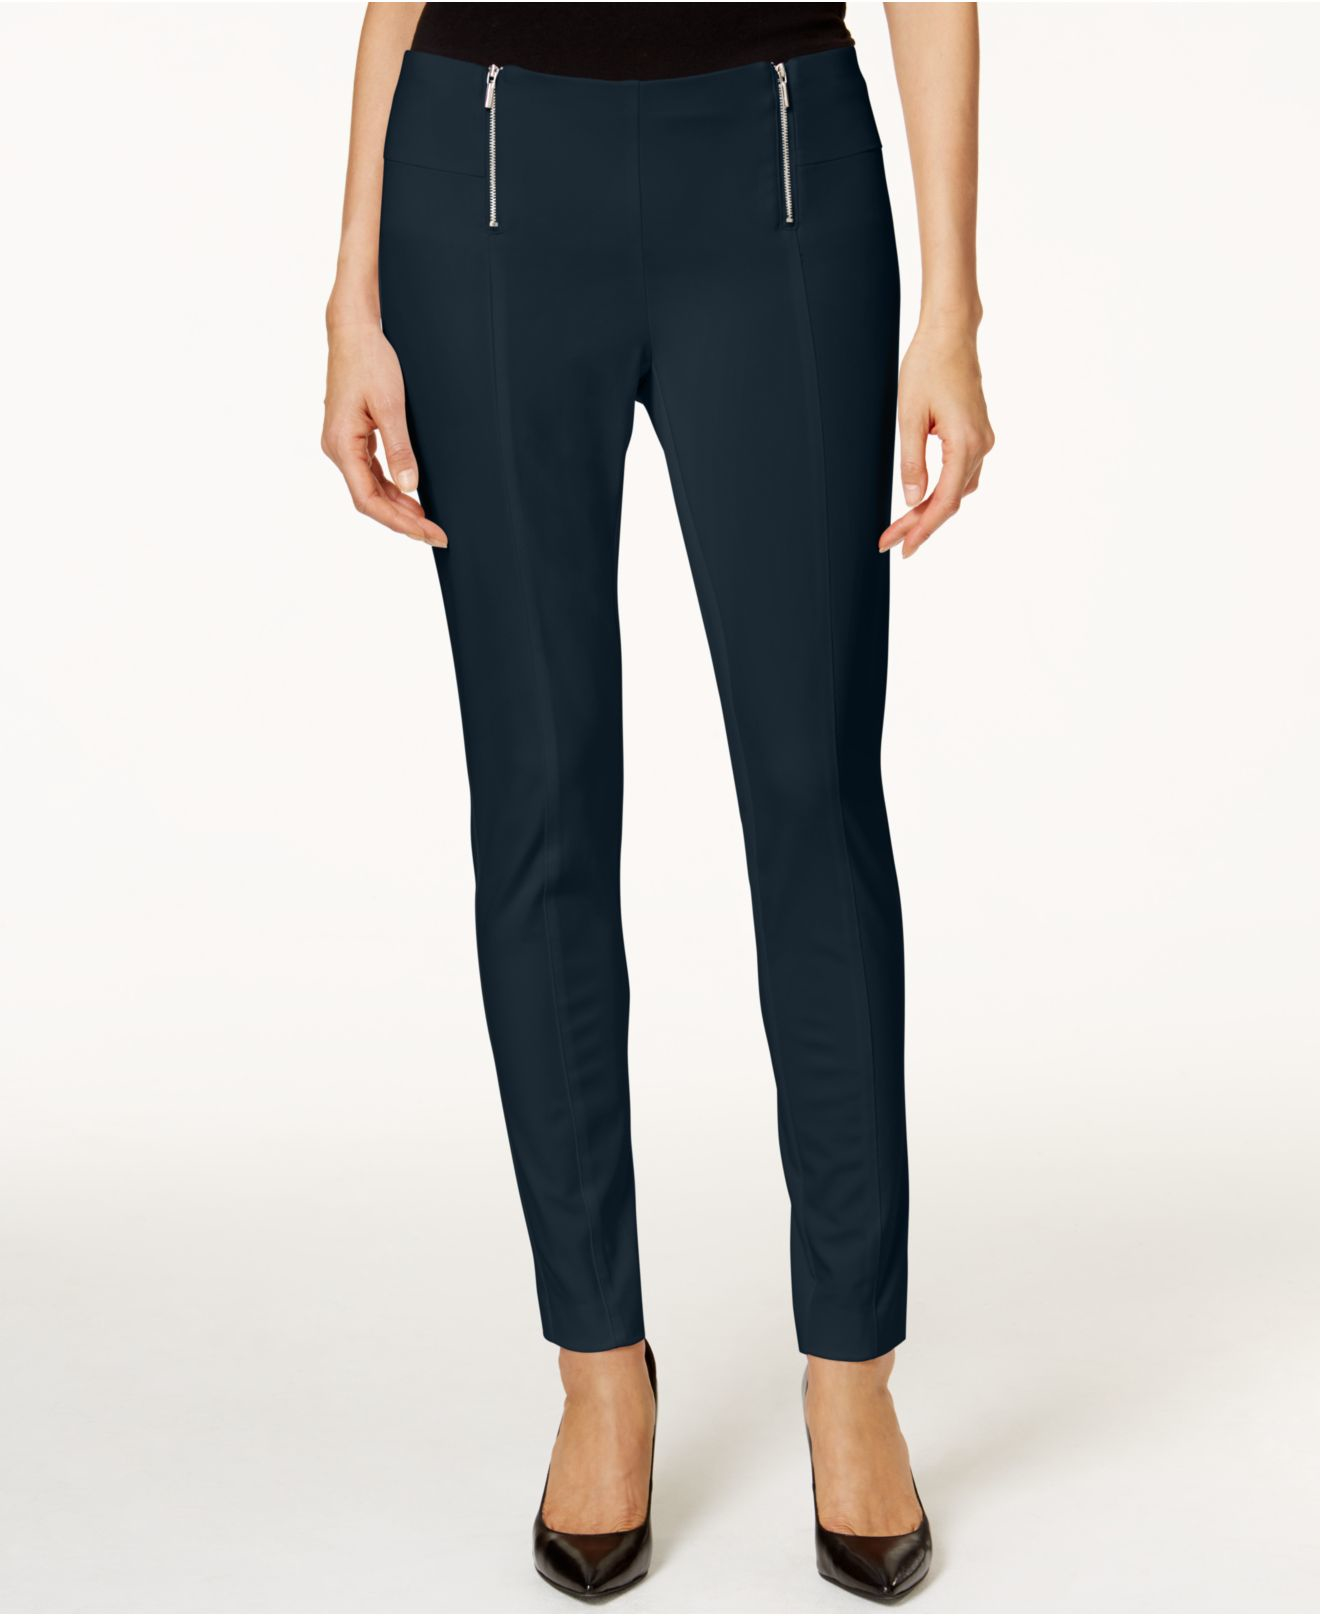 Shop Alfani Women's Pants at up to 70% off! Get the lowest price on your favorite brands at Poshmark. Poshmark makes shopping fun, affordable & easy!